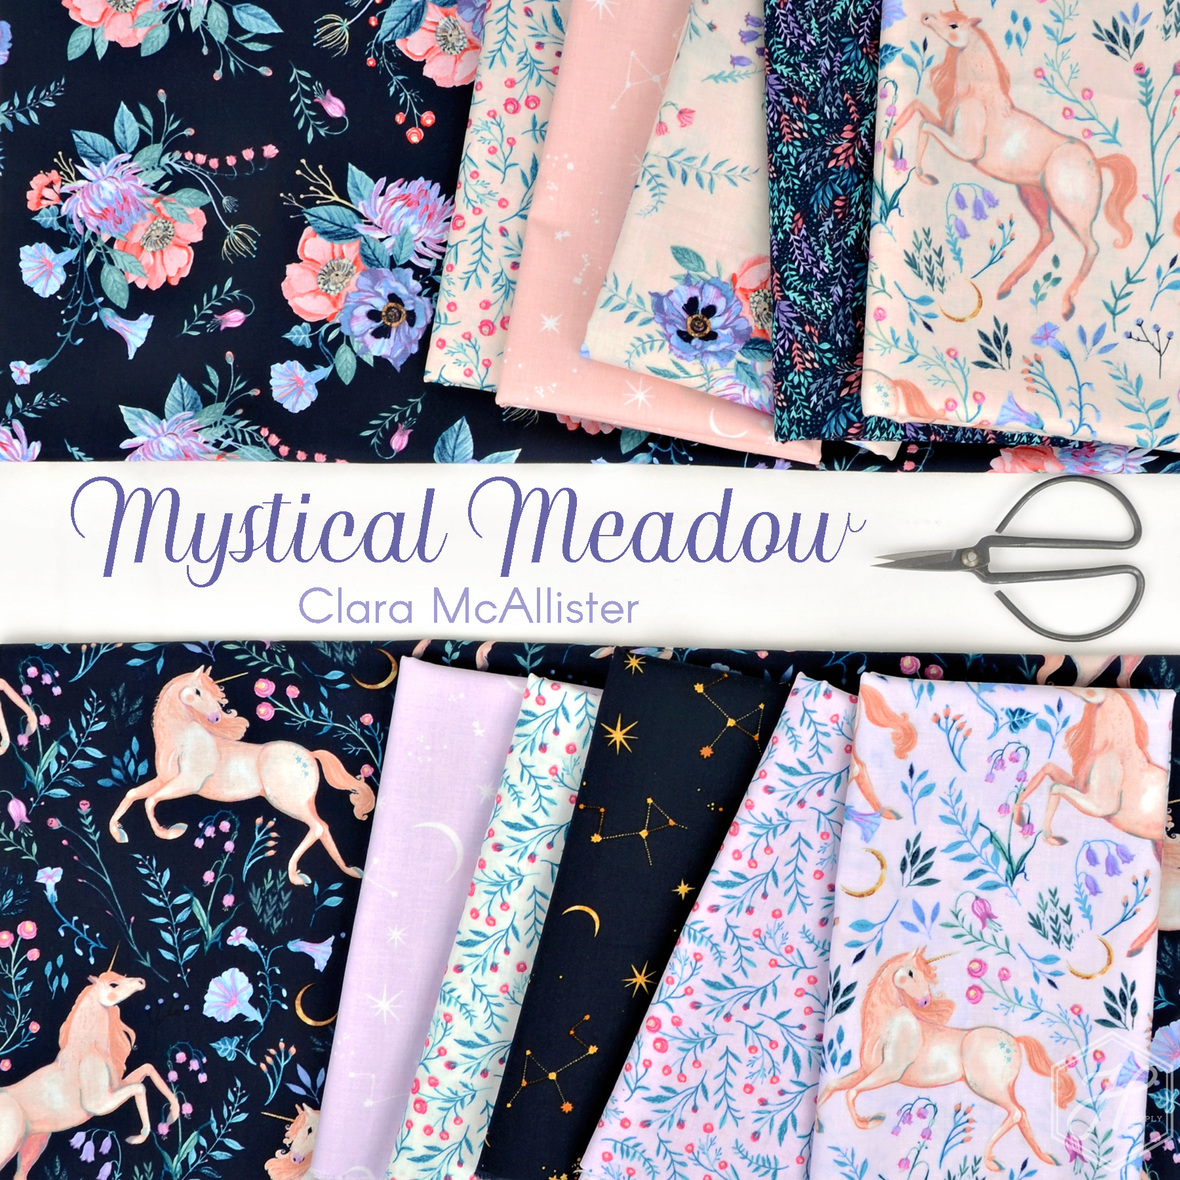 Mystical-Meadow-fabric-Michael-Miller-Crystal-McAllister-at-Hawthorne-Supply-Co